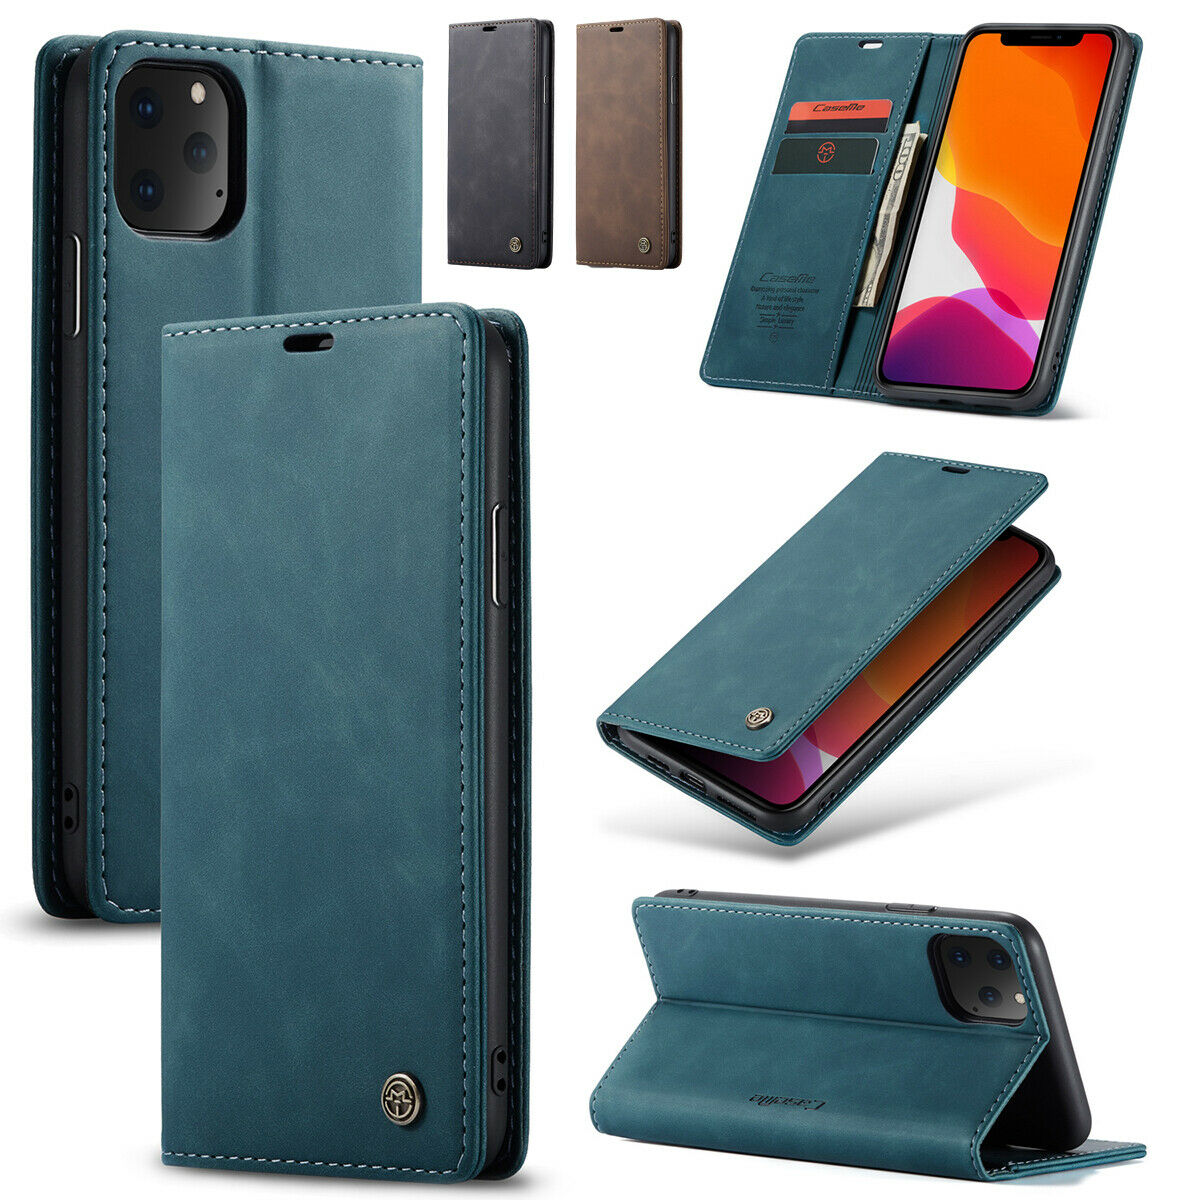 Brown Leather Cover Wallet for iPhone 11 Pro Max Simple Flip Case Fit for iPhone 11 Pro Max